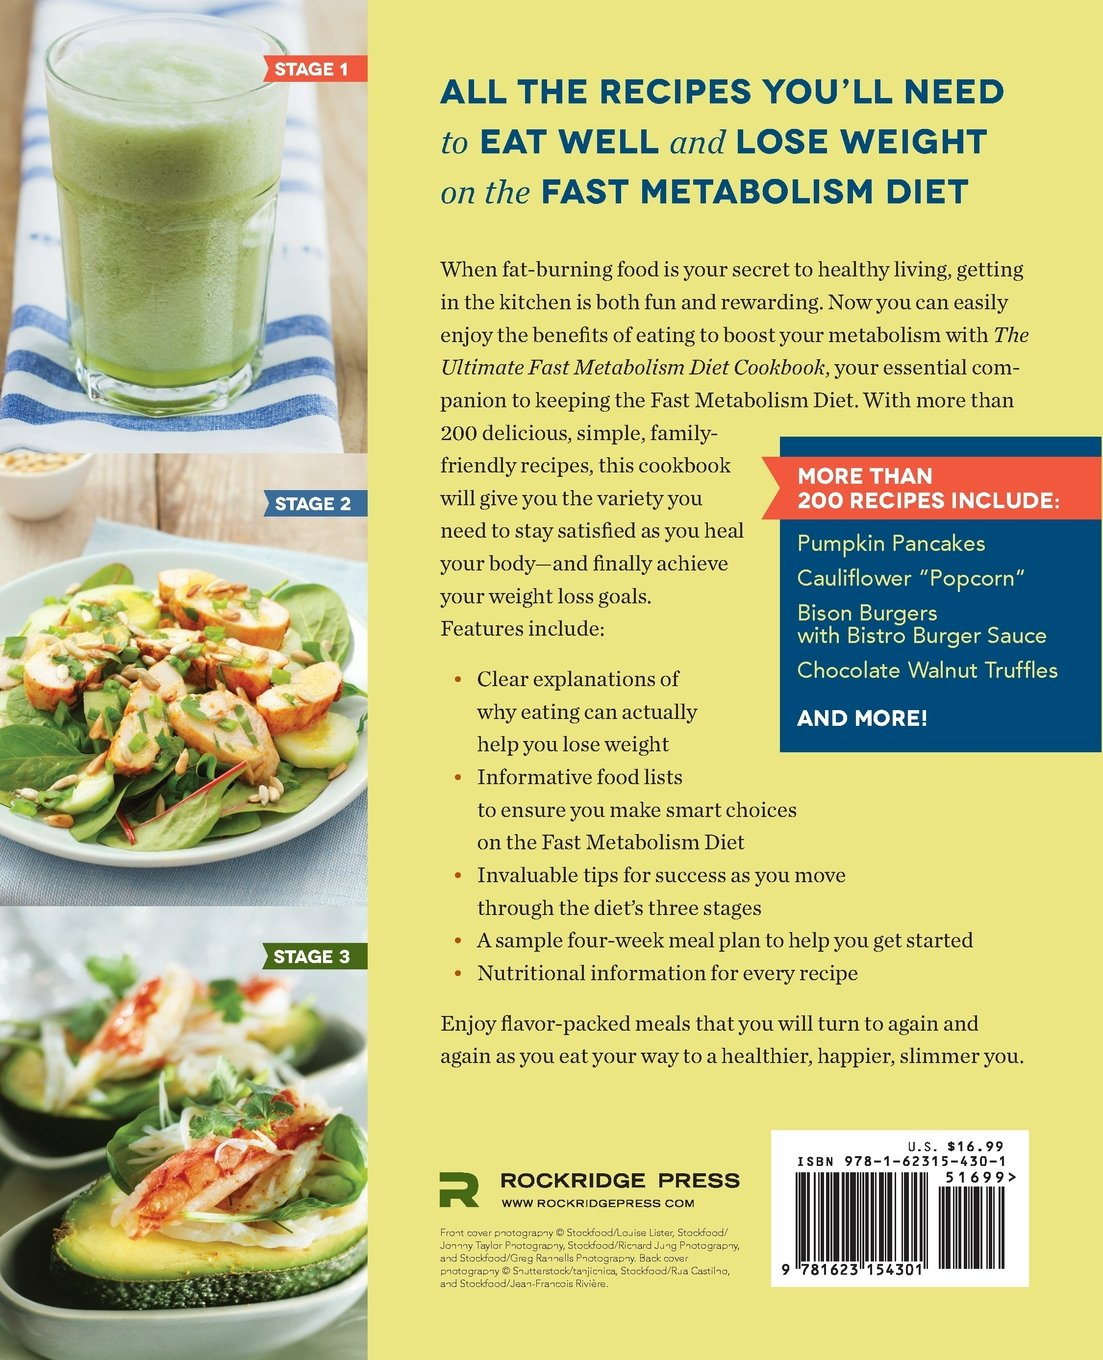 Fast metabolism diet reviews - Ultimate Fast Metabolism Diet Cookbook Quick And Simple Recipes To Boost Your Metabolism And Lose Weight Rockridge Press 9781623154301 Amazon Com Books